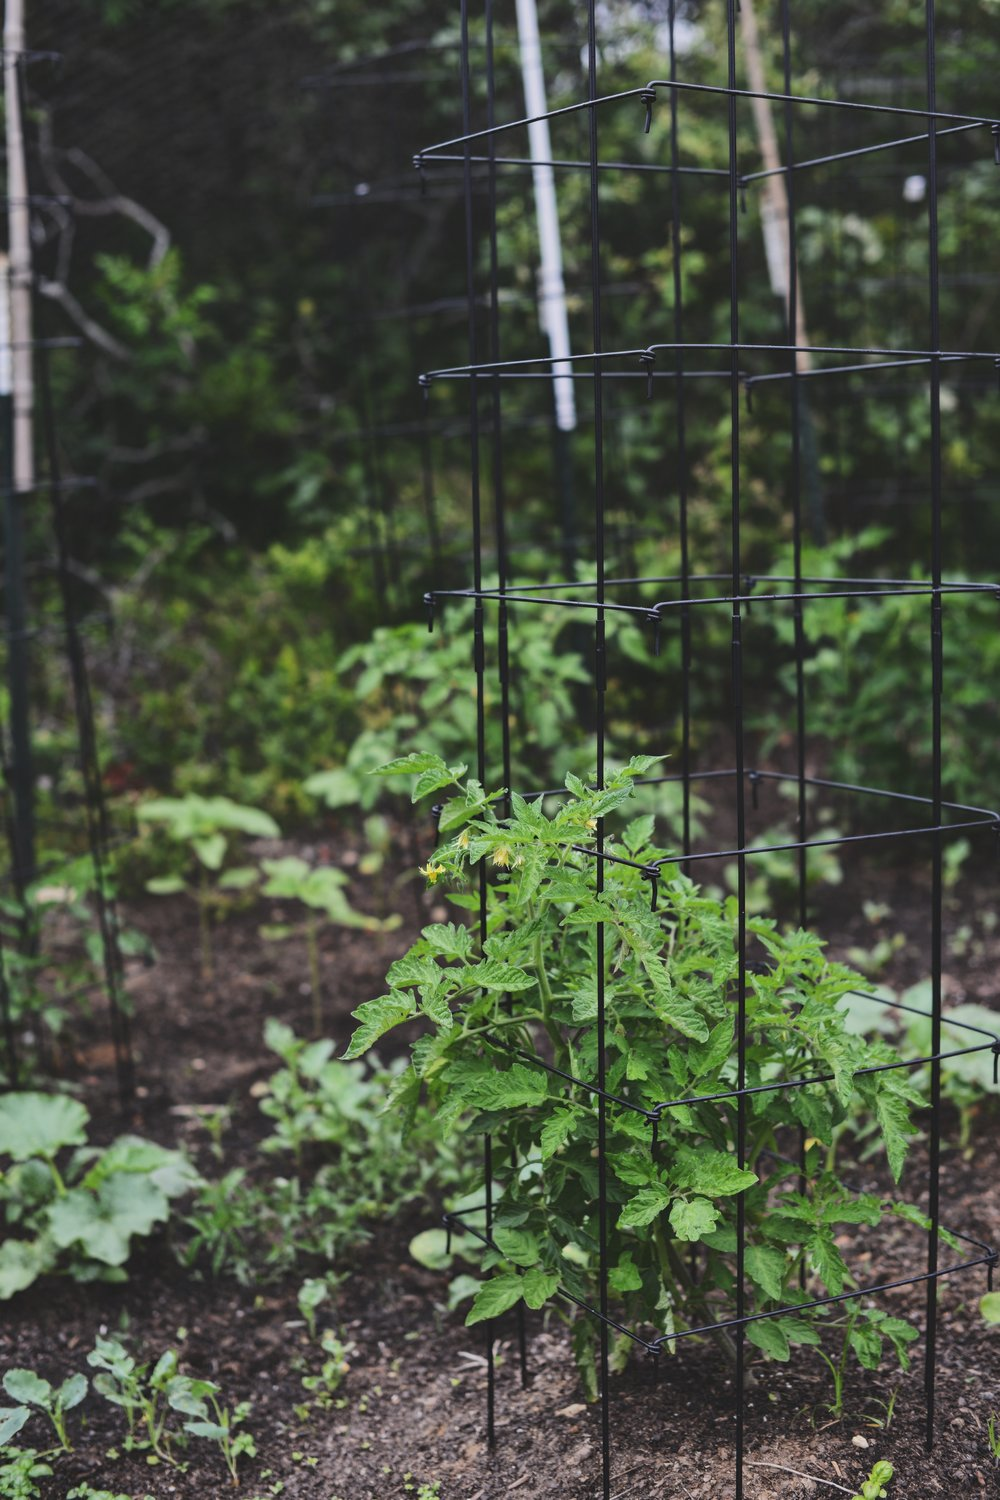 Extra-Tall Tomato Tower Cages by Gardeners Supply Co.